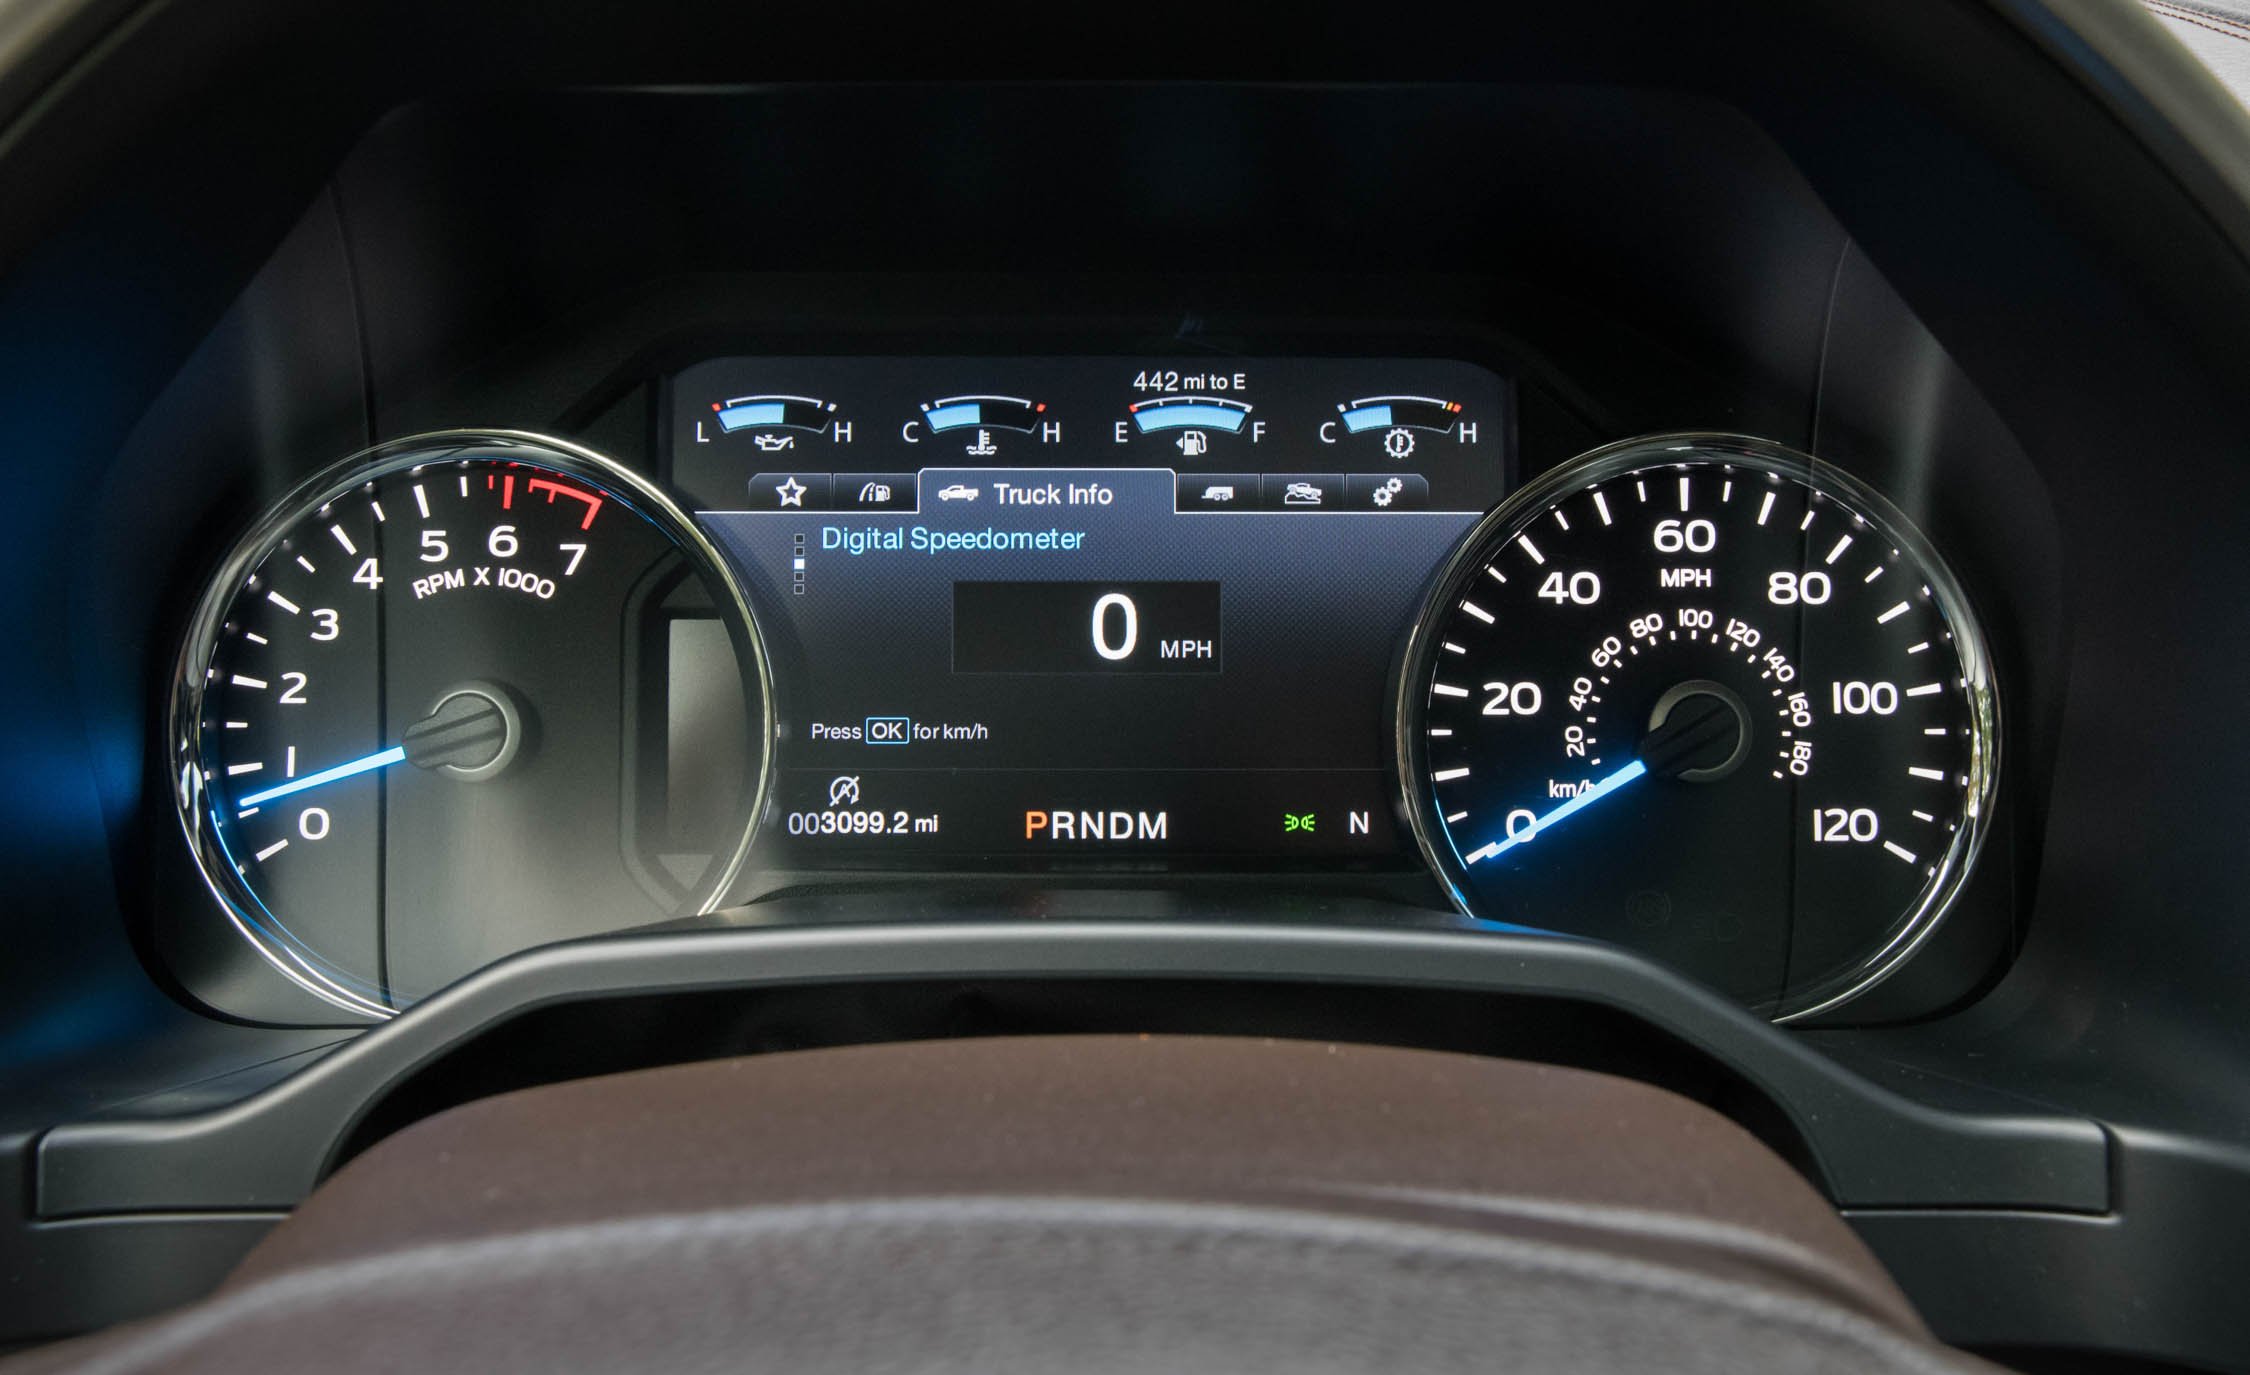 2017 Ford F 150 King Ranch Interior View Speedometer (Photo 8 of 50)